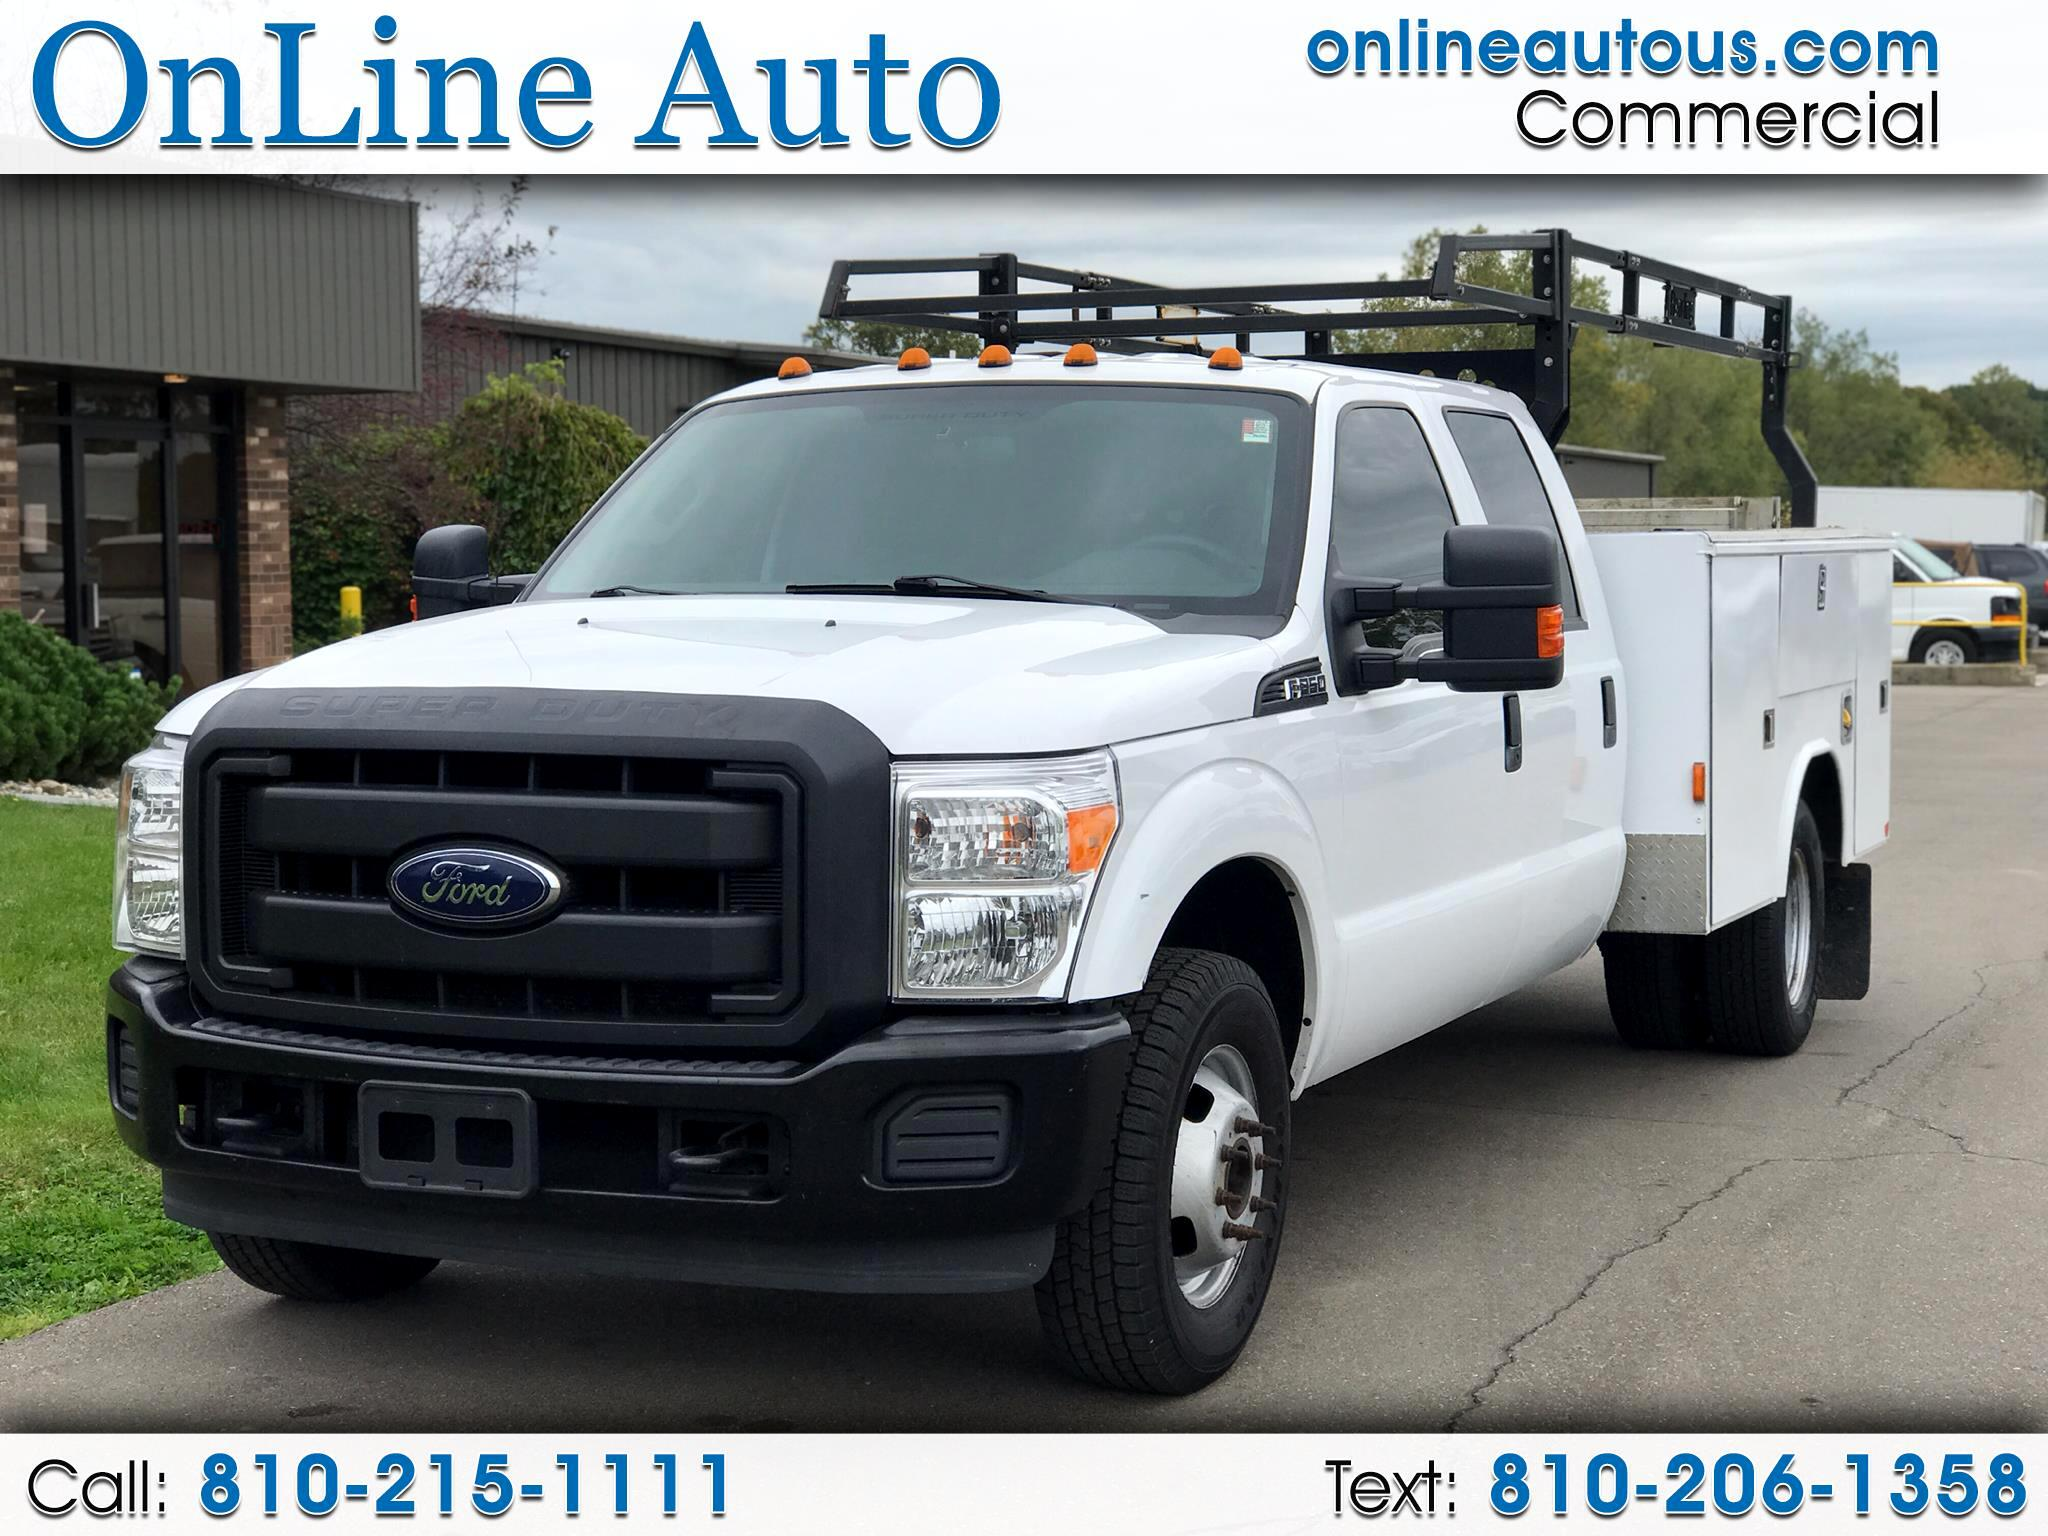 2016 Ford Super Duty F-350 DRW SUPER DUTY UTILITY TRUCK